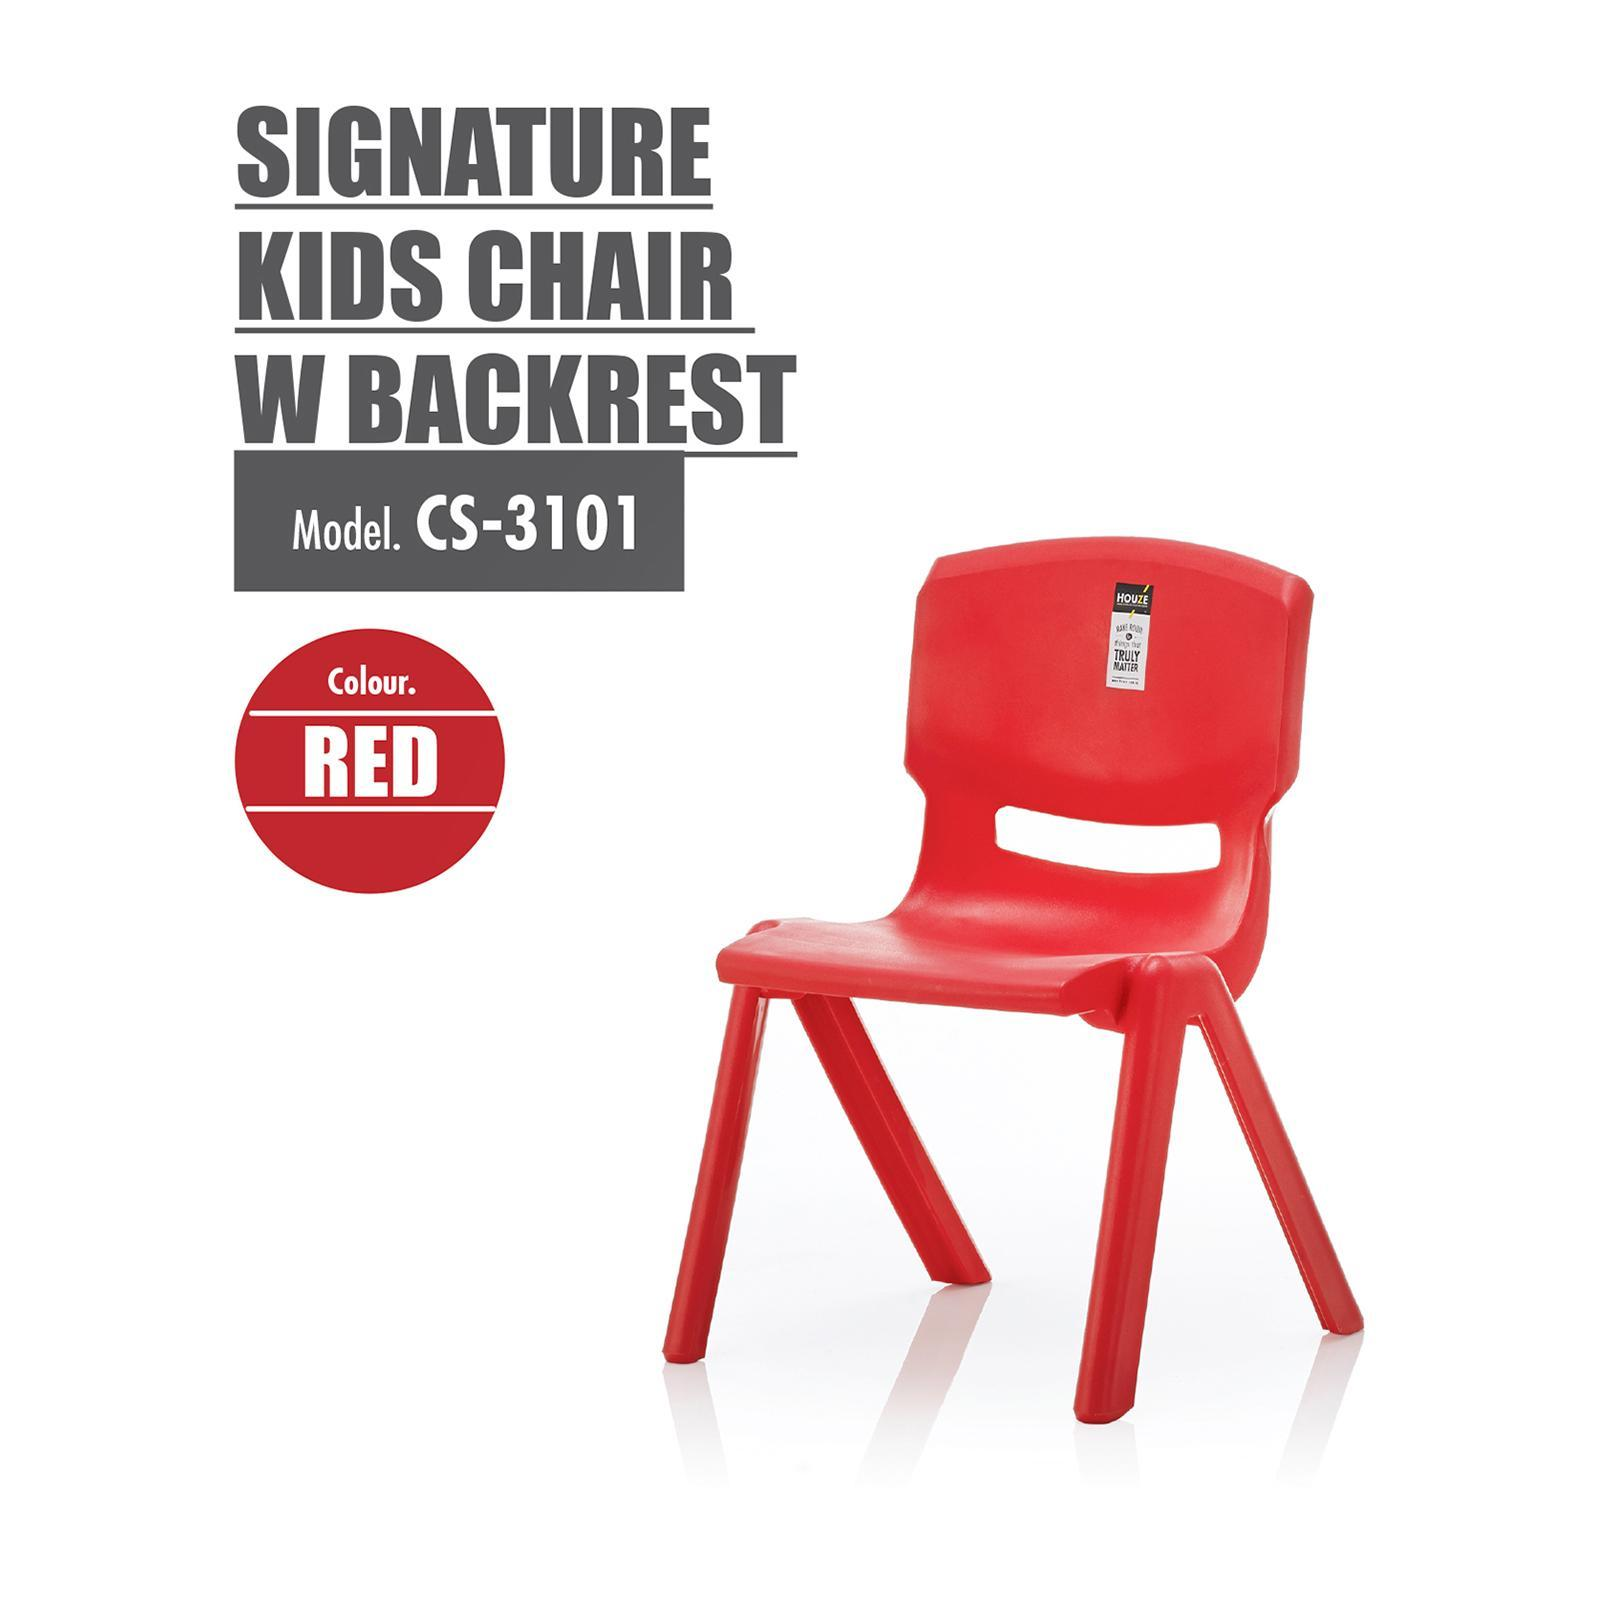 Houze Signature Kids Chair With Backrest - Red - CS-3401-RED